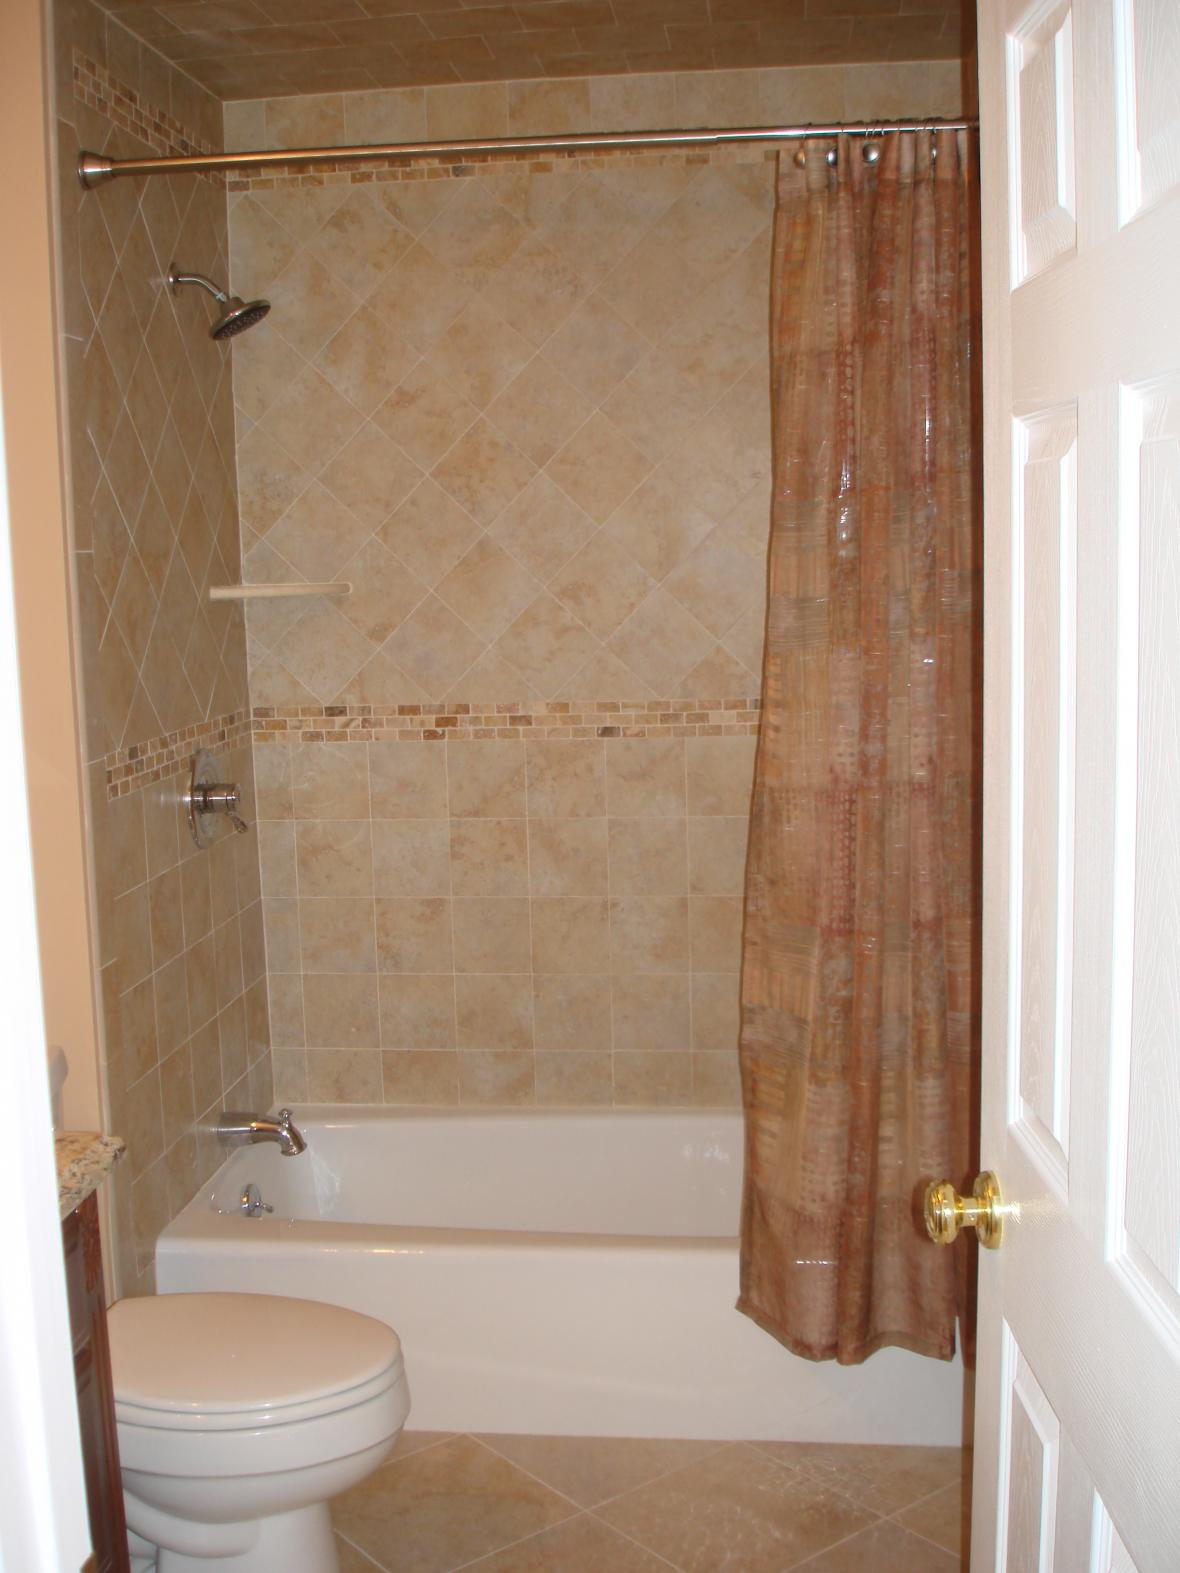 Tile for bathroom Photo - 1